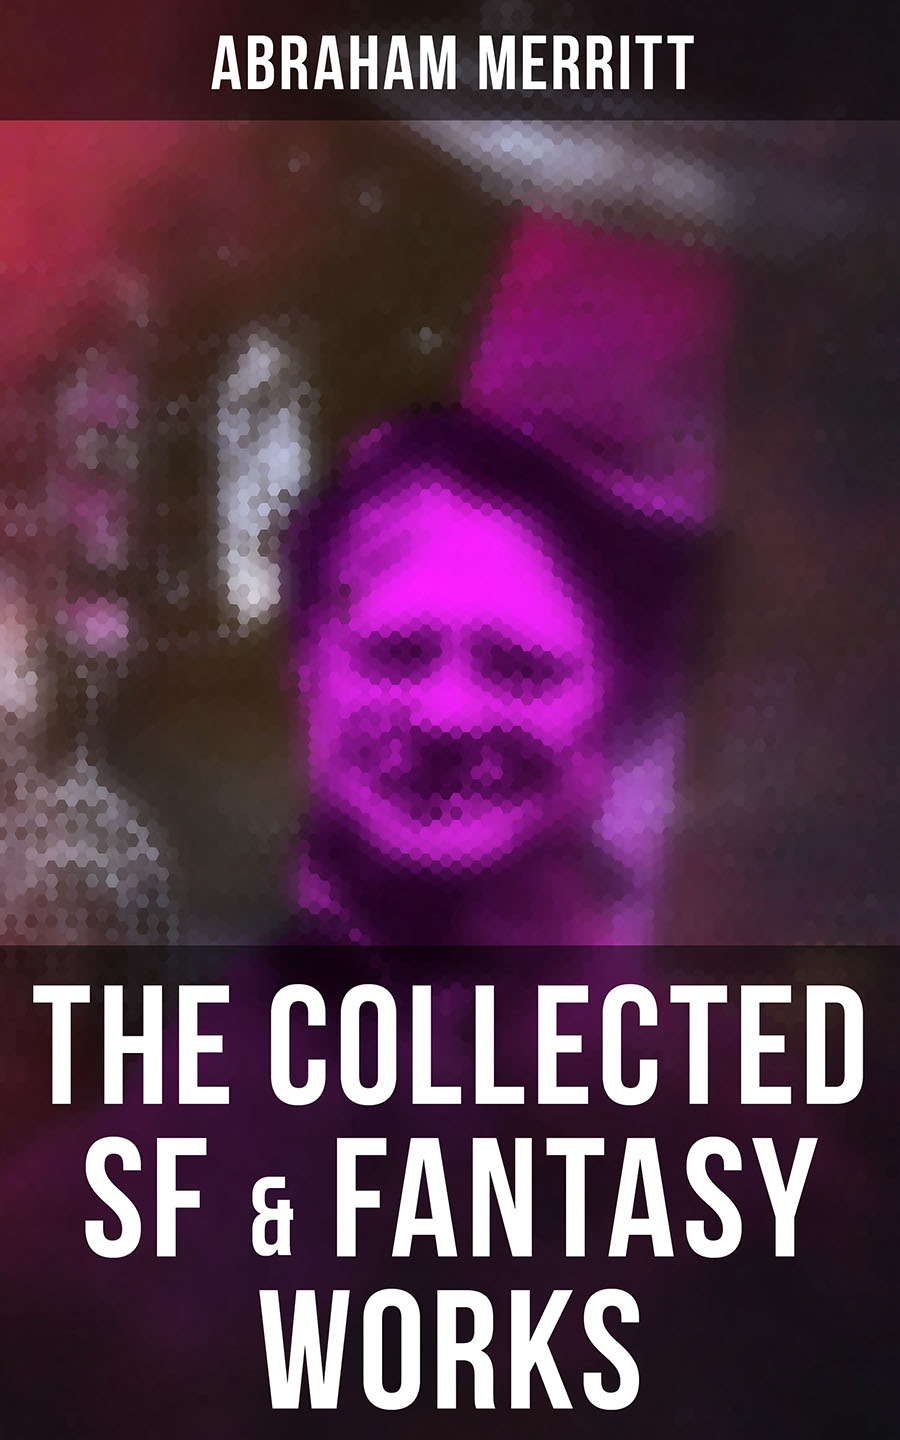 Abraham Merritt The Collected SF & Fantasy Works sallie mcfague sallie mcfague collected readings